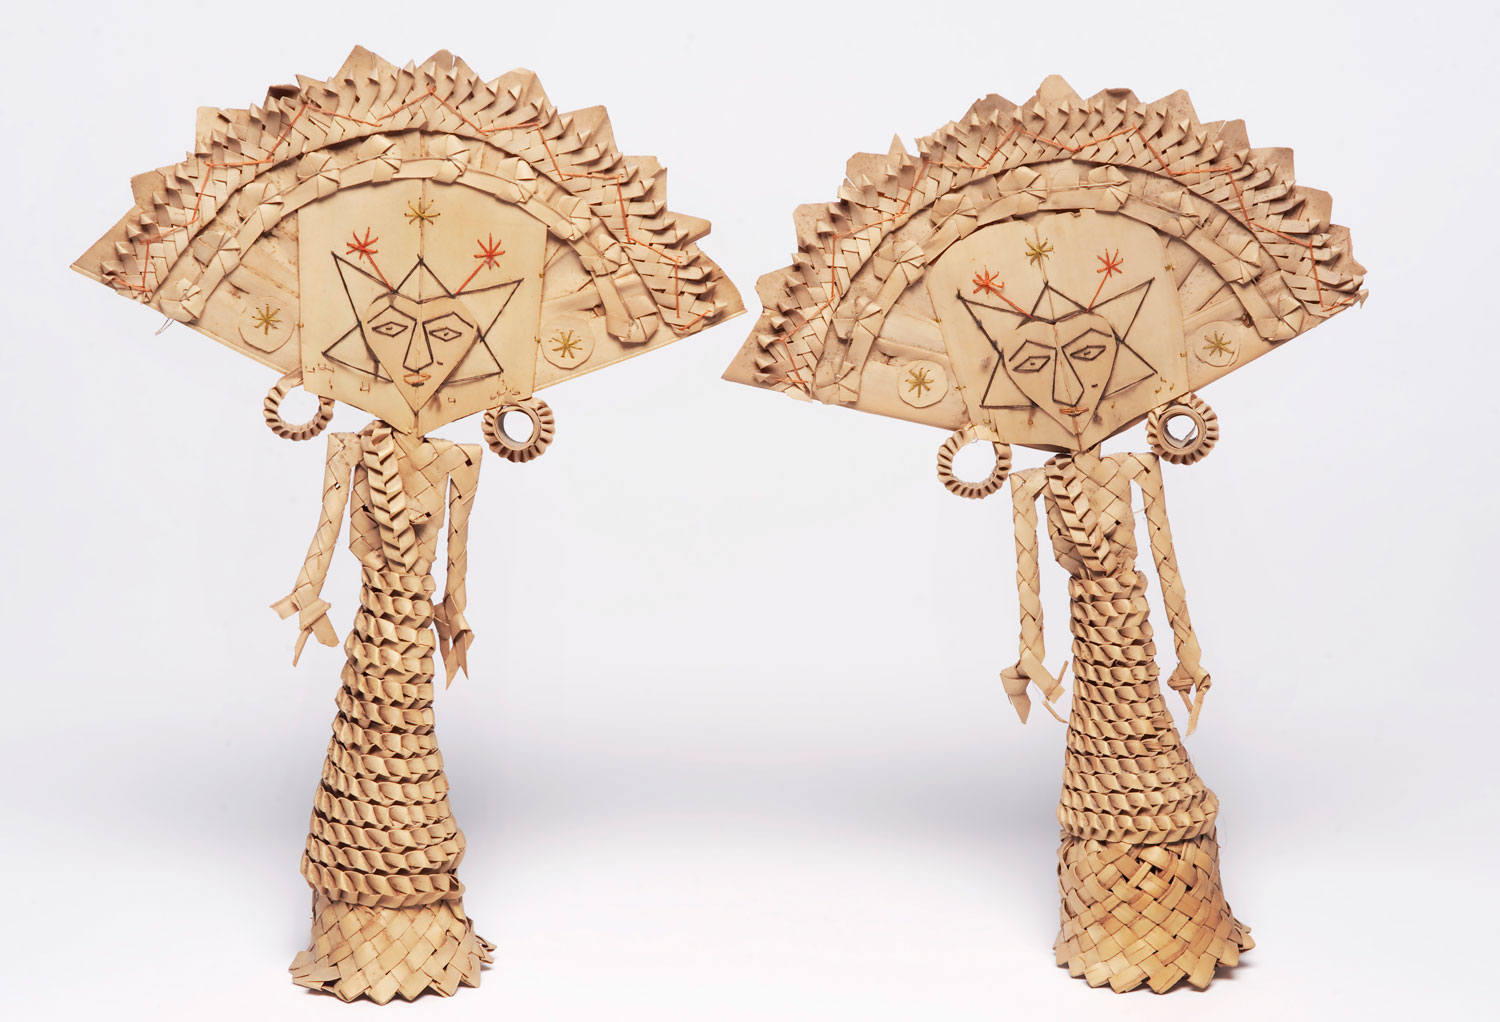 Two dolls made from palm leaves with a fan shaped head